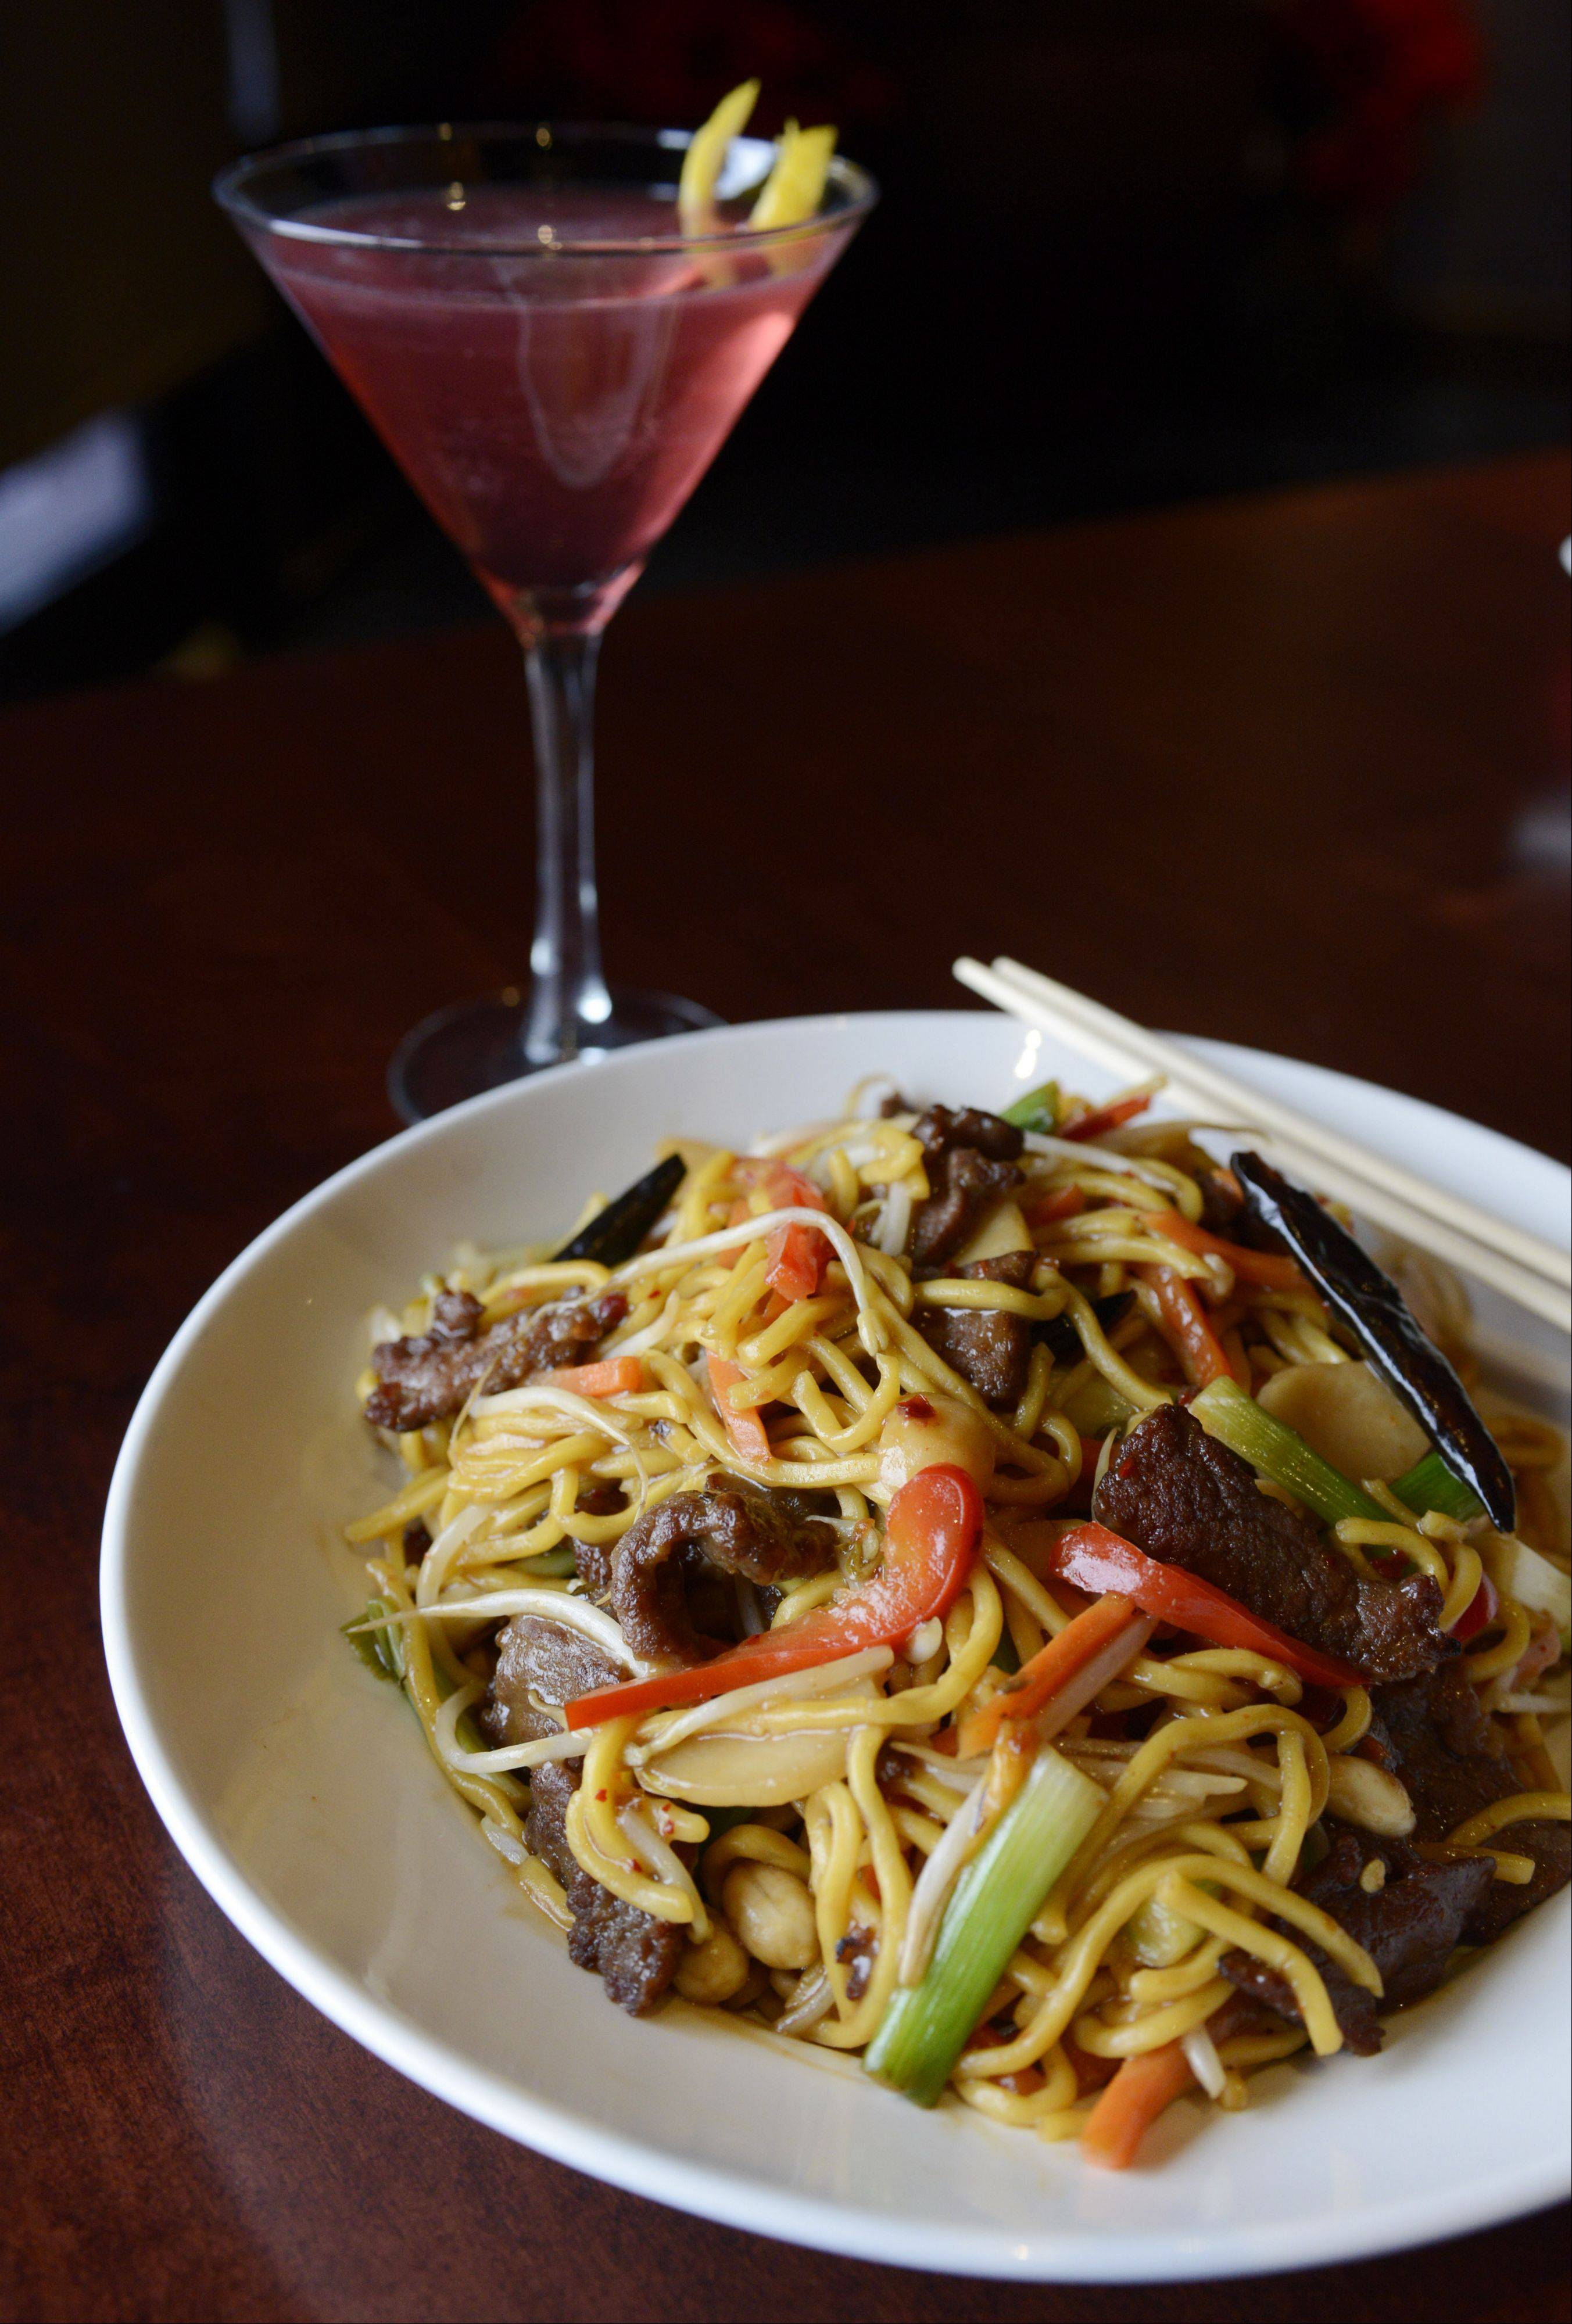 Kung pao noodles with steak, served at Wok'n Fire, South Barrington.